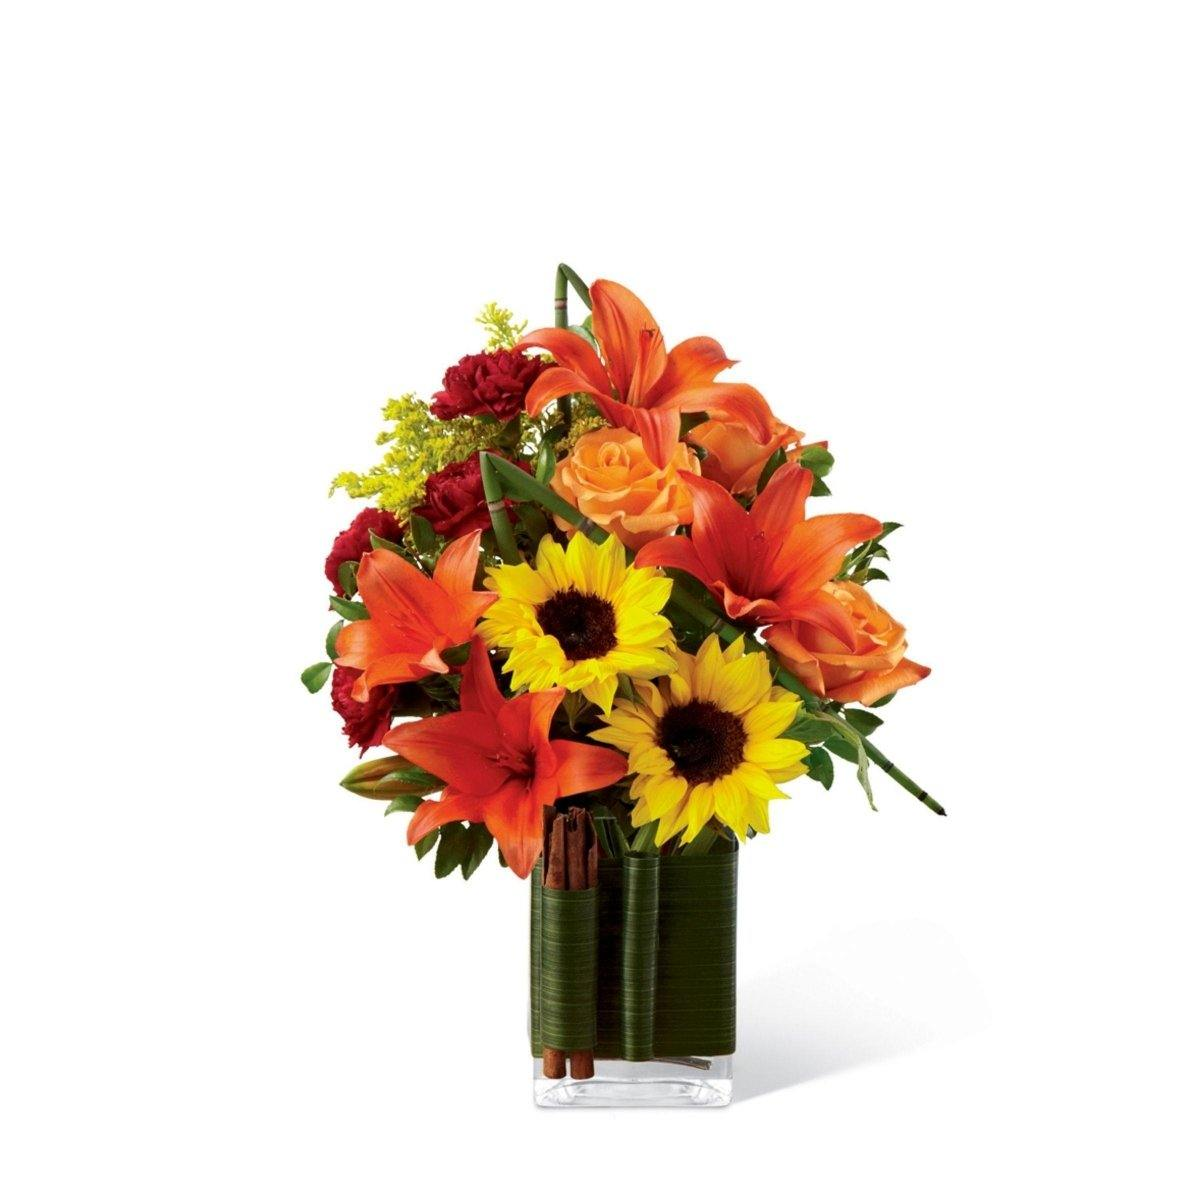 The FTD® Vibrant Views Bouquet 2014